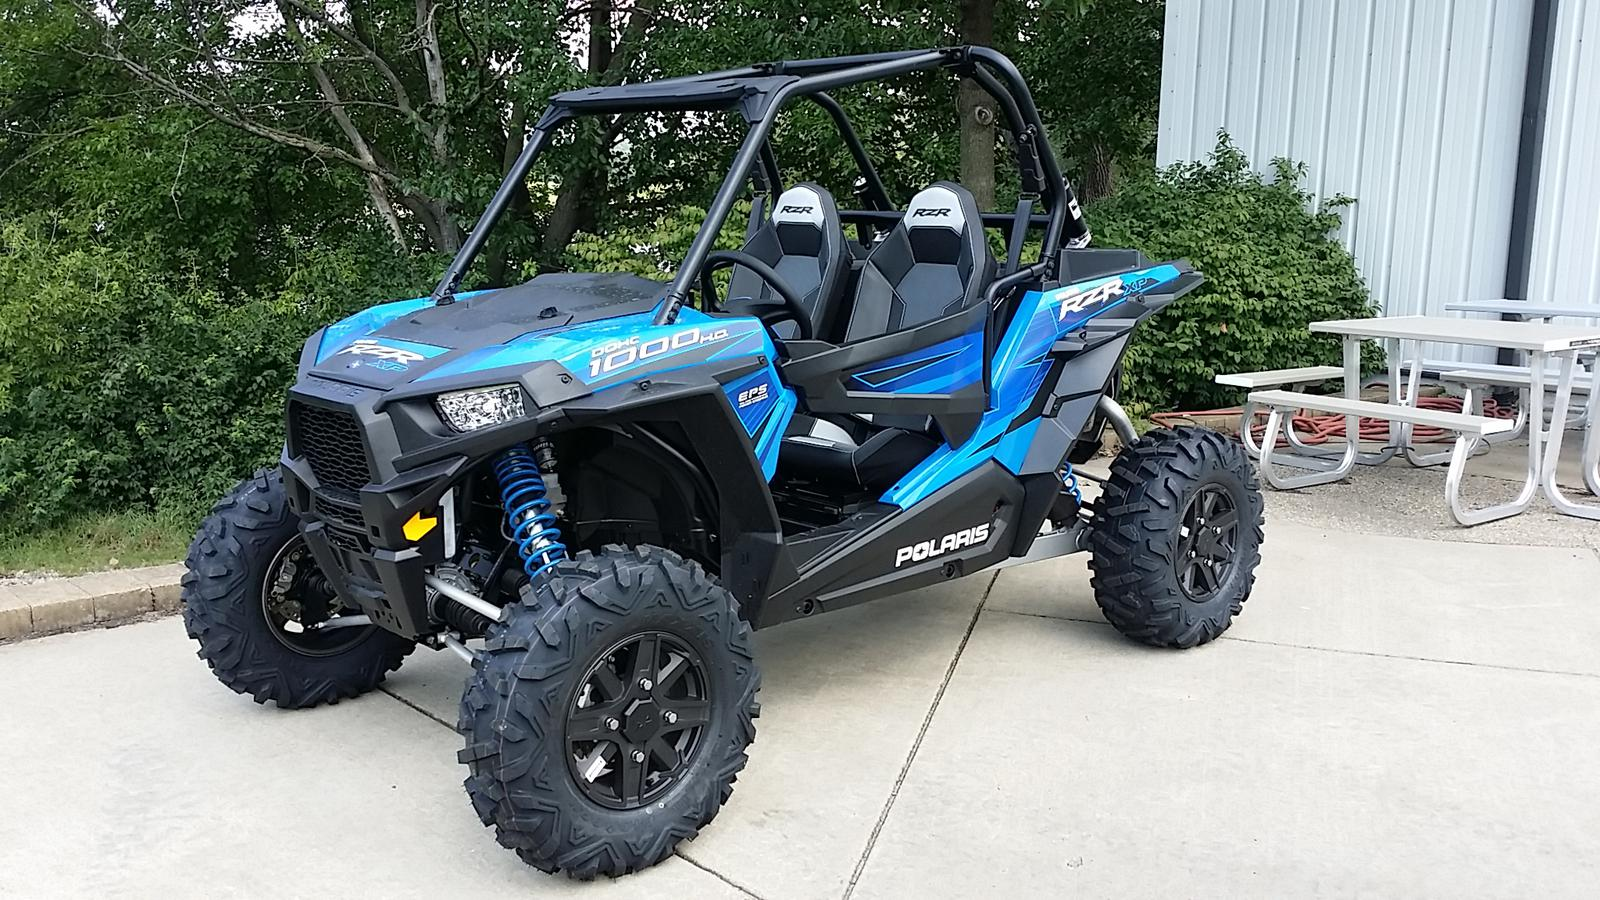 polaris recalls 2015 my rzr 900 and rzr 1000 for faulty fuel lines 100709_1 polaris recalls 2015 my rzr 900 and rzr 1000 for faulty fuel lines